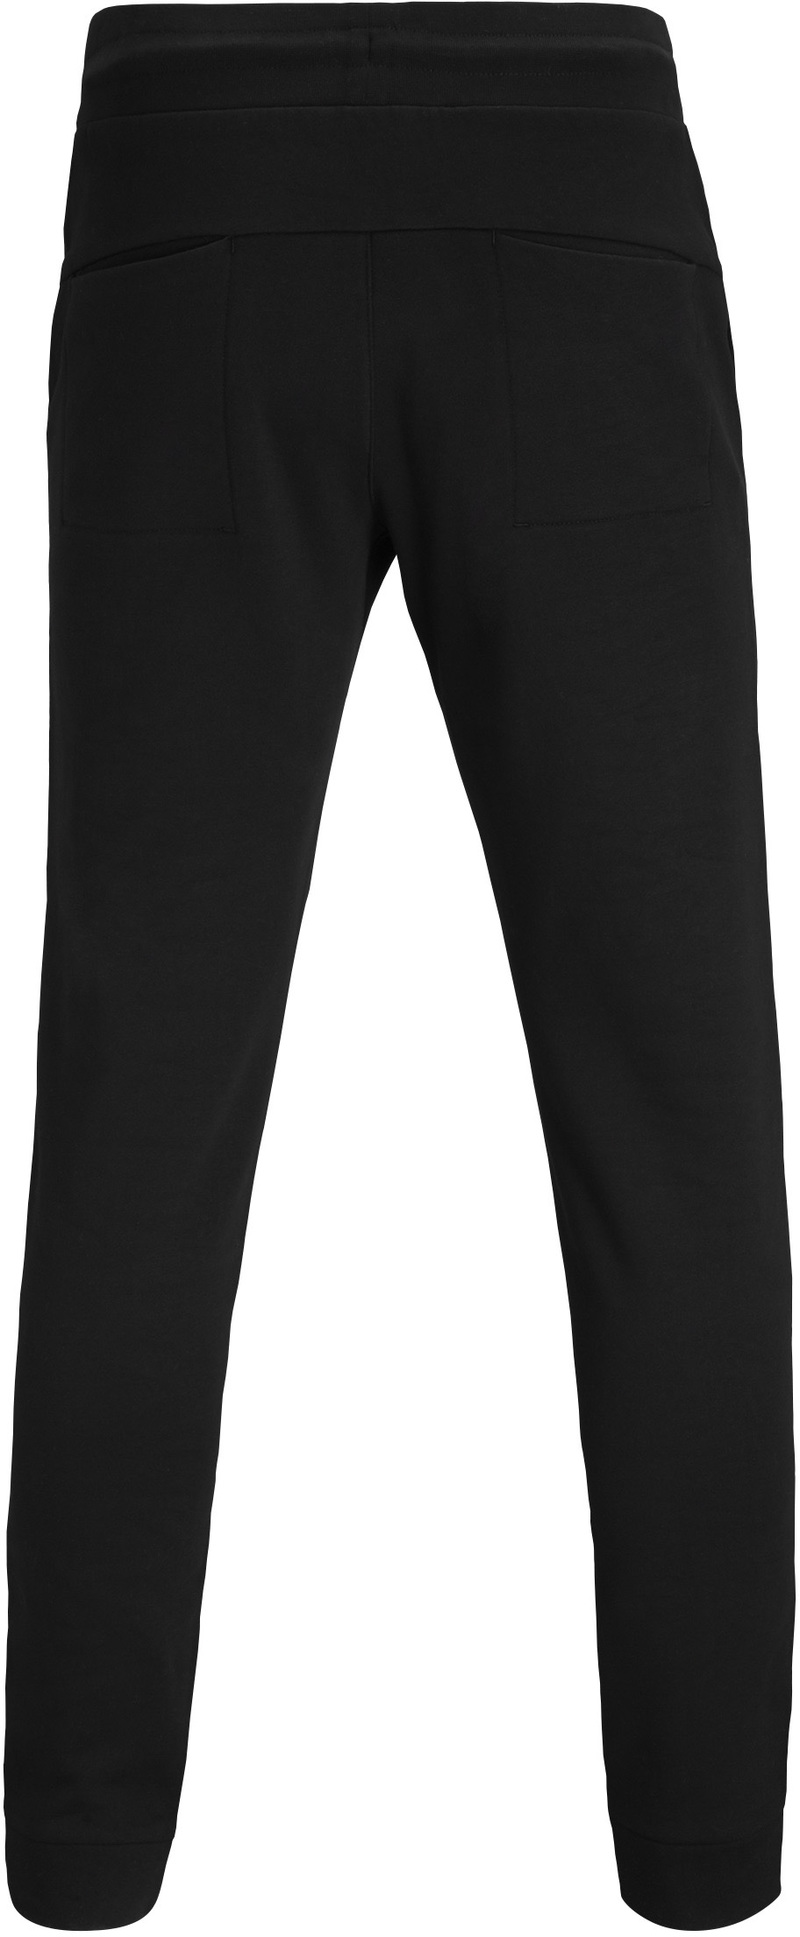 Bjorn Borg Sweatpants Black Beauty photo 2